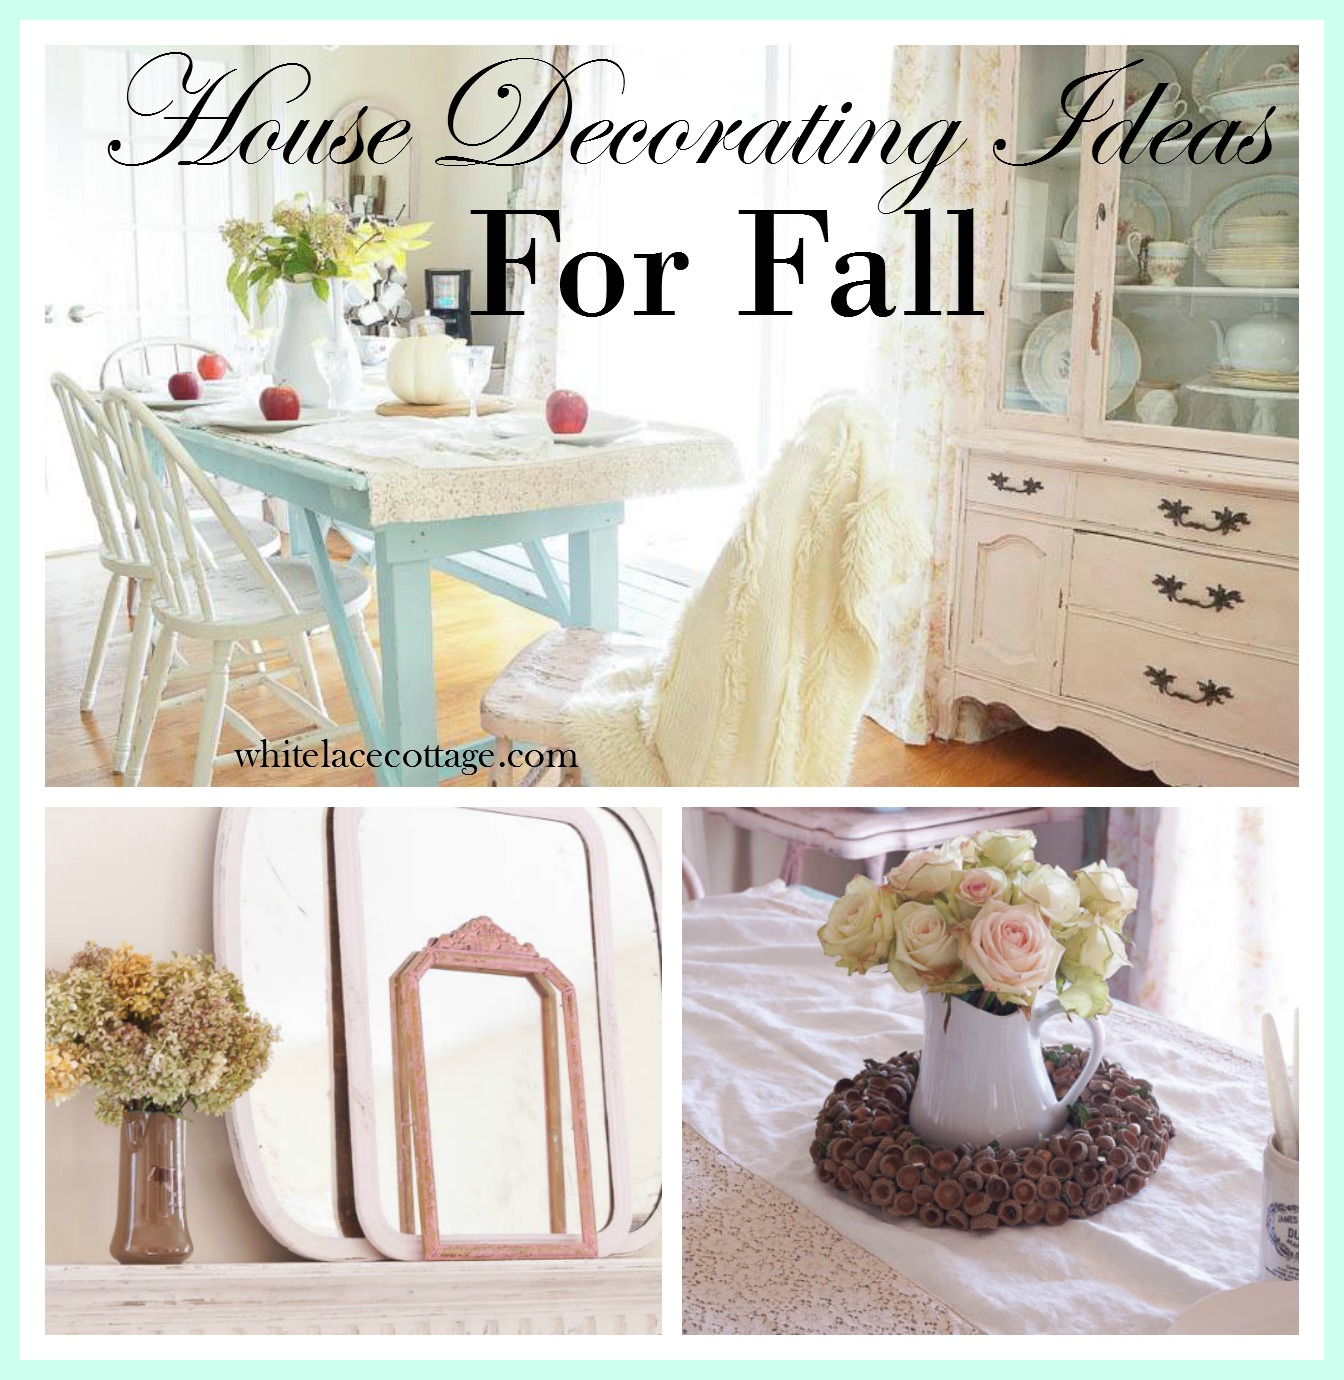 House Decorating Ideas For Fall